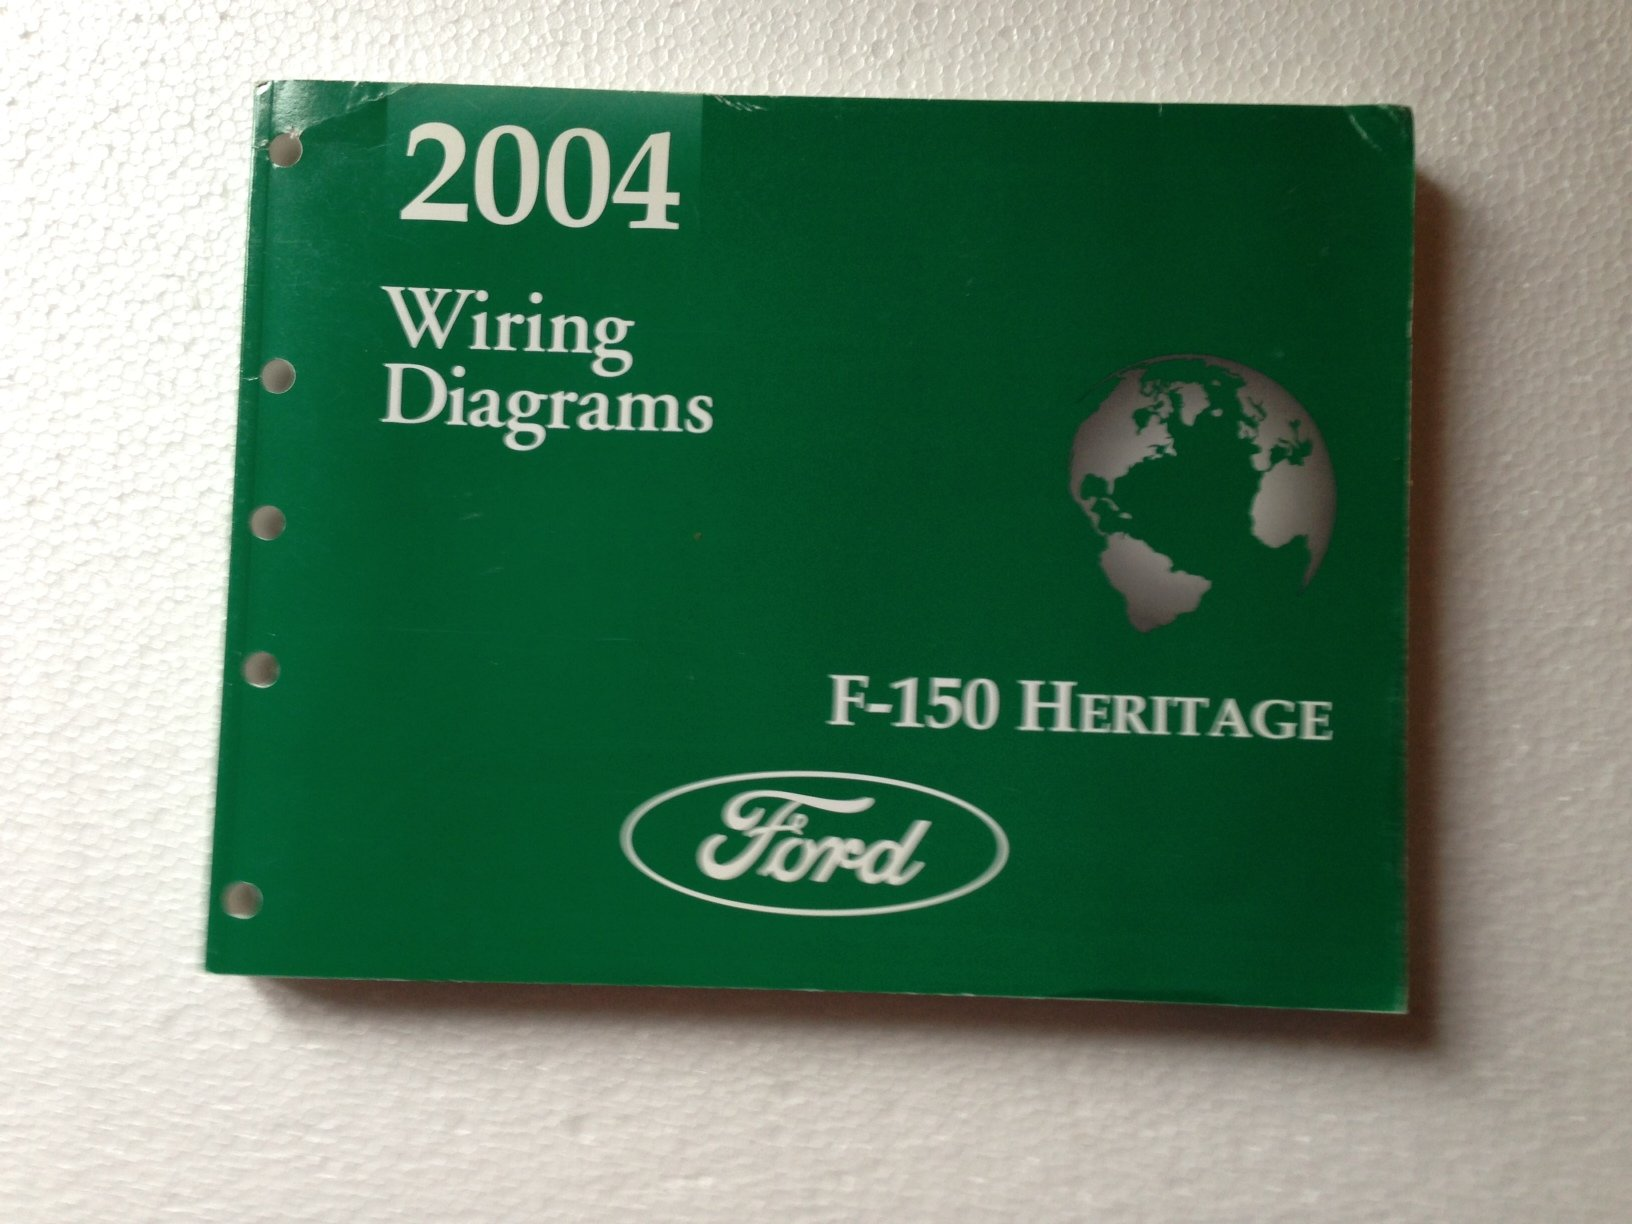 04 Ford F 150 Fuse Diagram Wiring Library 2012 Submited Images Pic2fly 2004 Heritage Trusted Layout